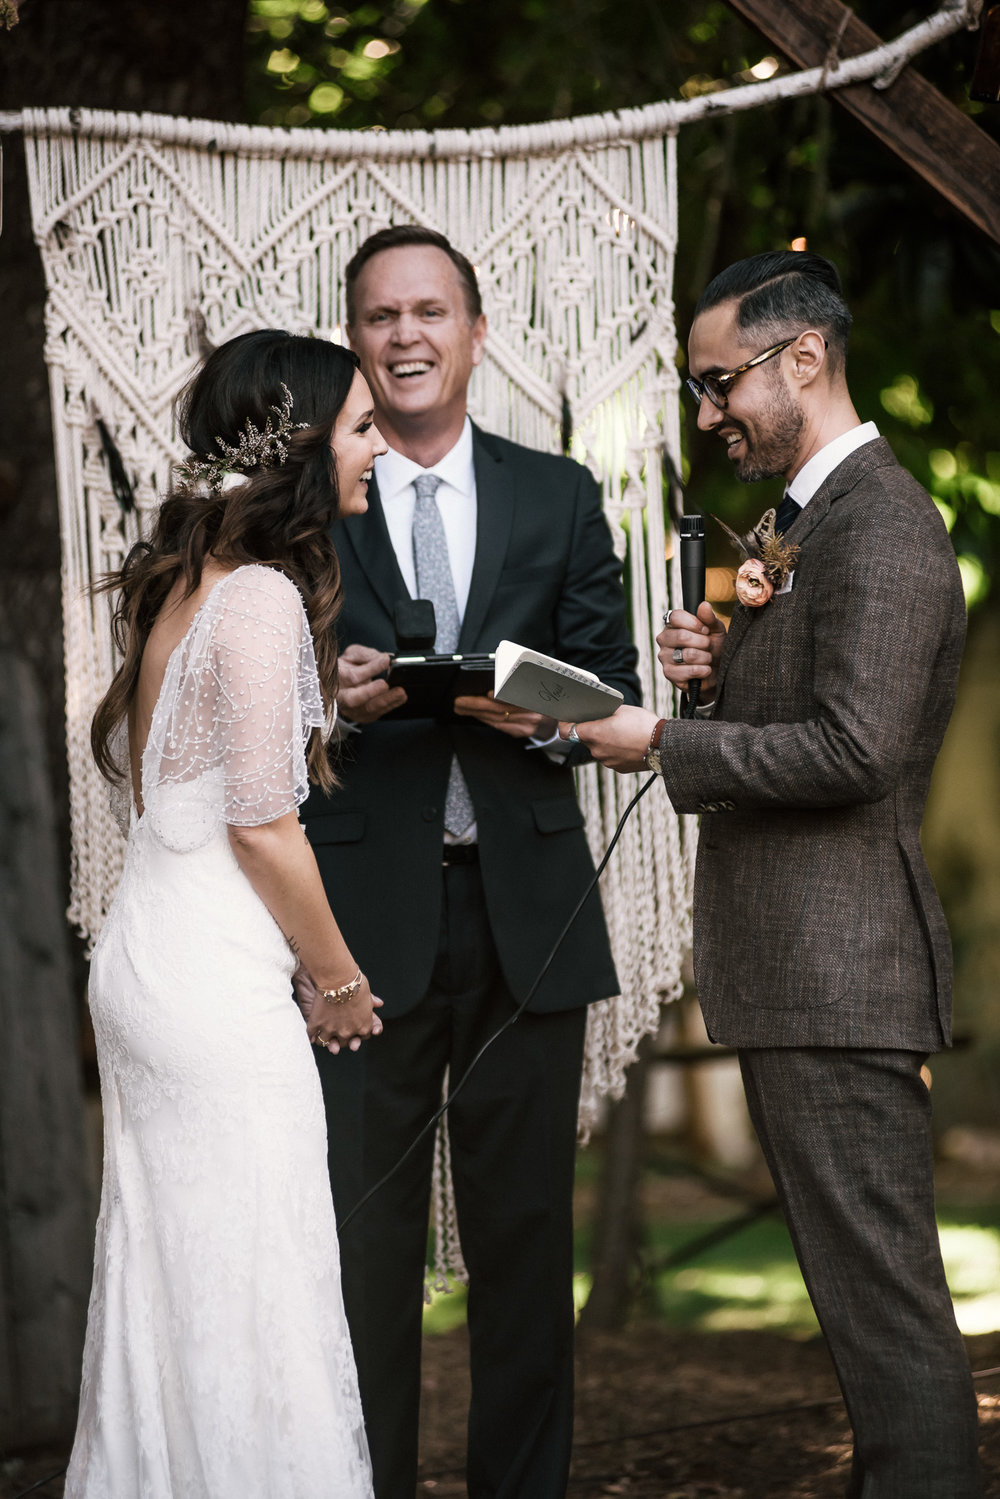 bride laughs at grooms joke shot by wedding photographer at the charming St. George Hotel in Volcano California